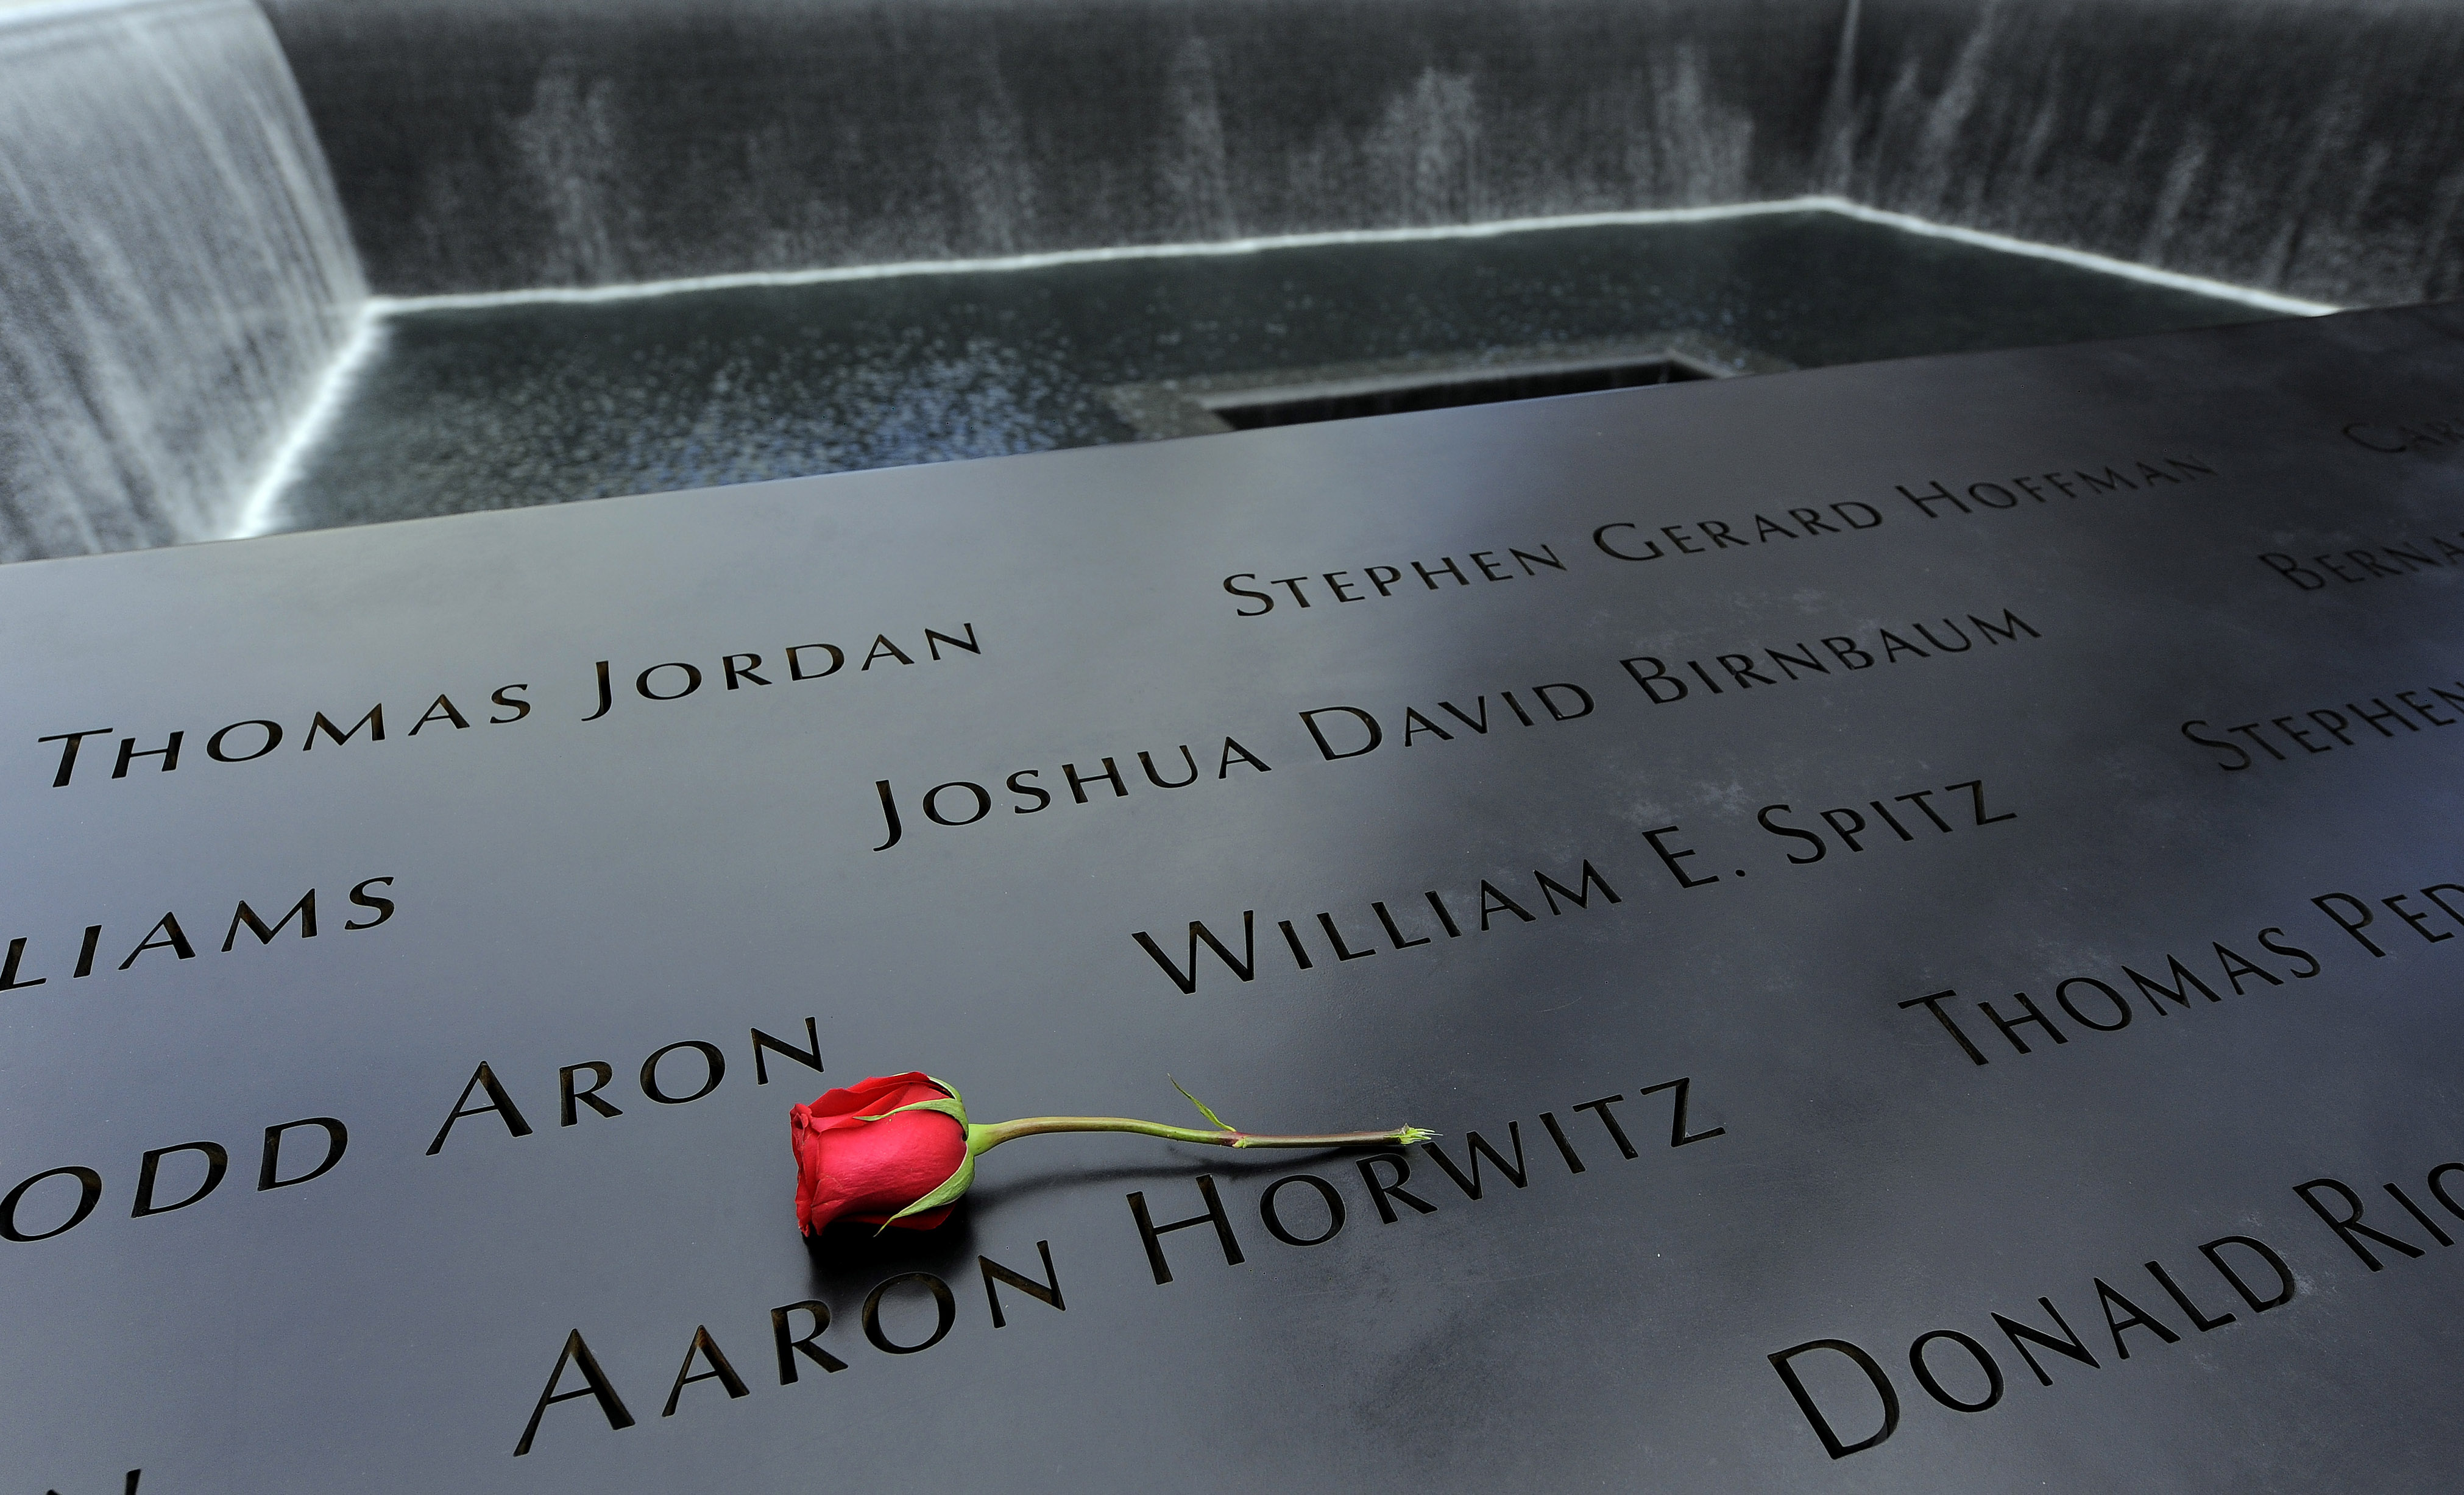 A rose is placed on the names inscribed around the North Pool of the 9/11 Memorial during tenth anniversary ceremonies at the site of the World Trade Center in New York on Sept. 11, 2011.